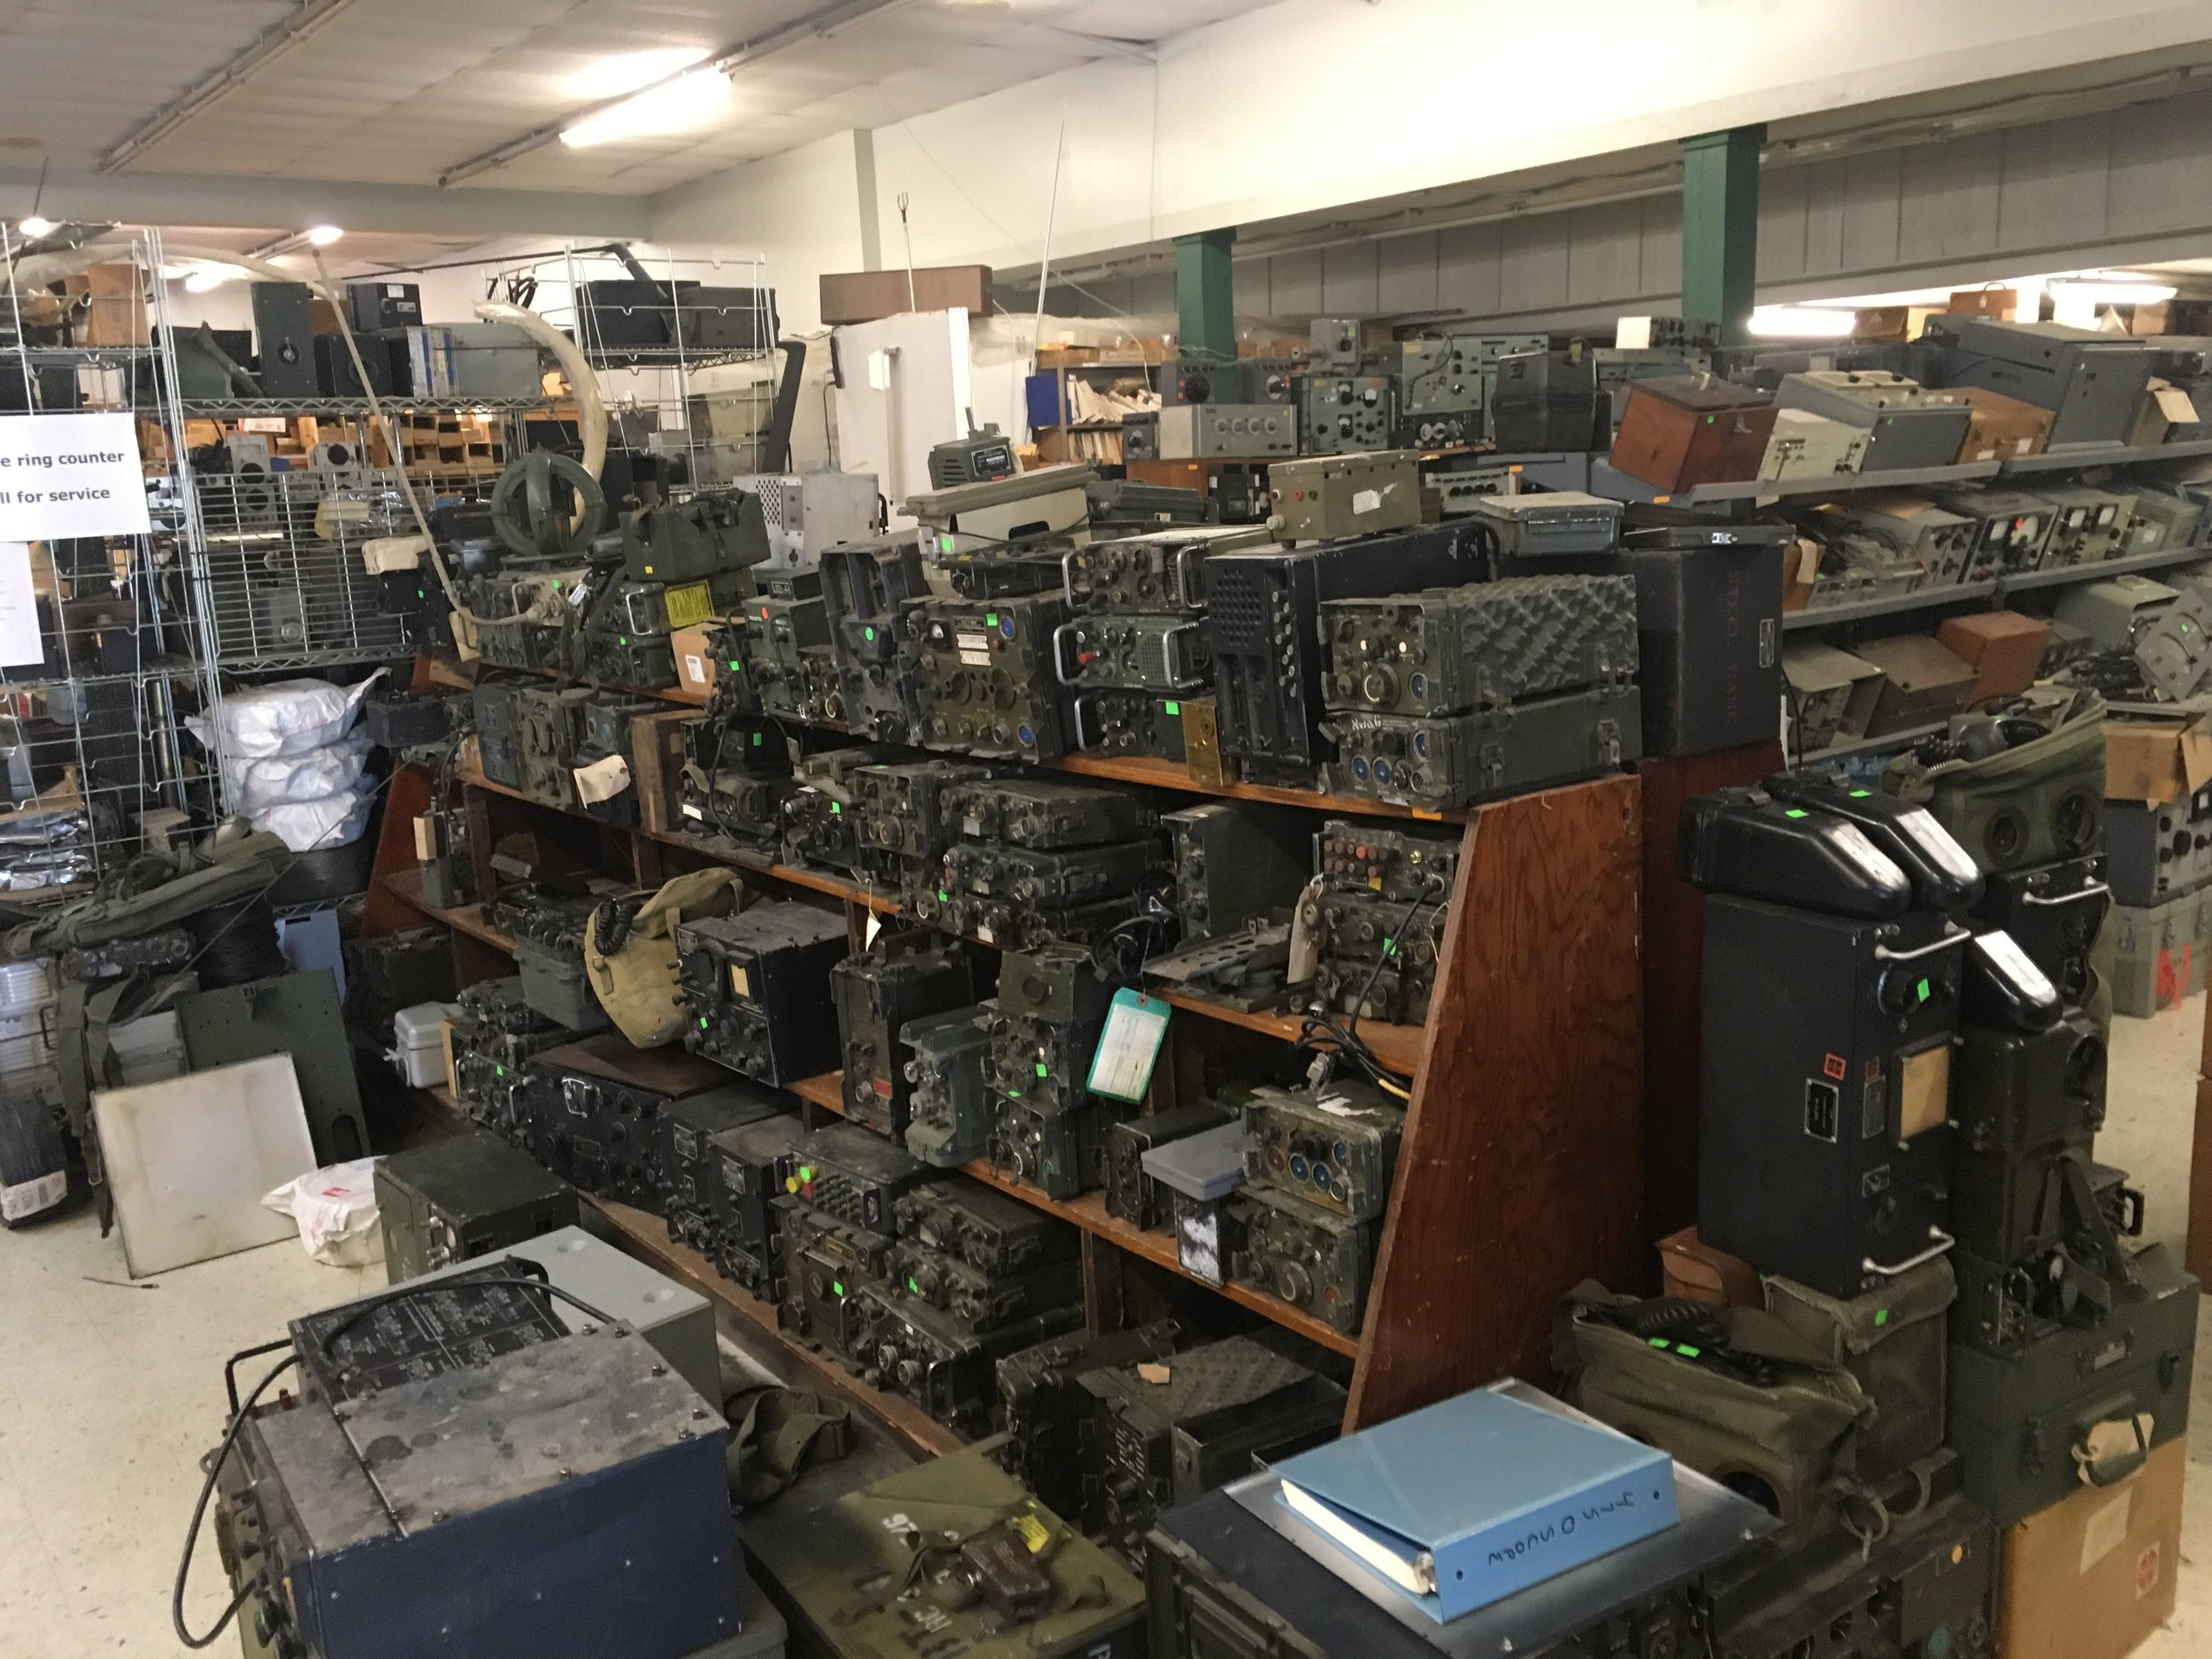 Miles of old military radios and parts.